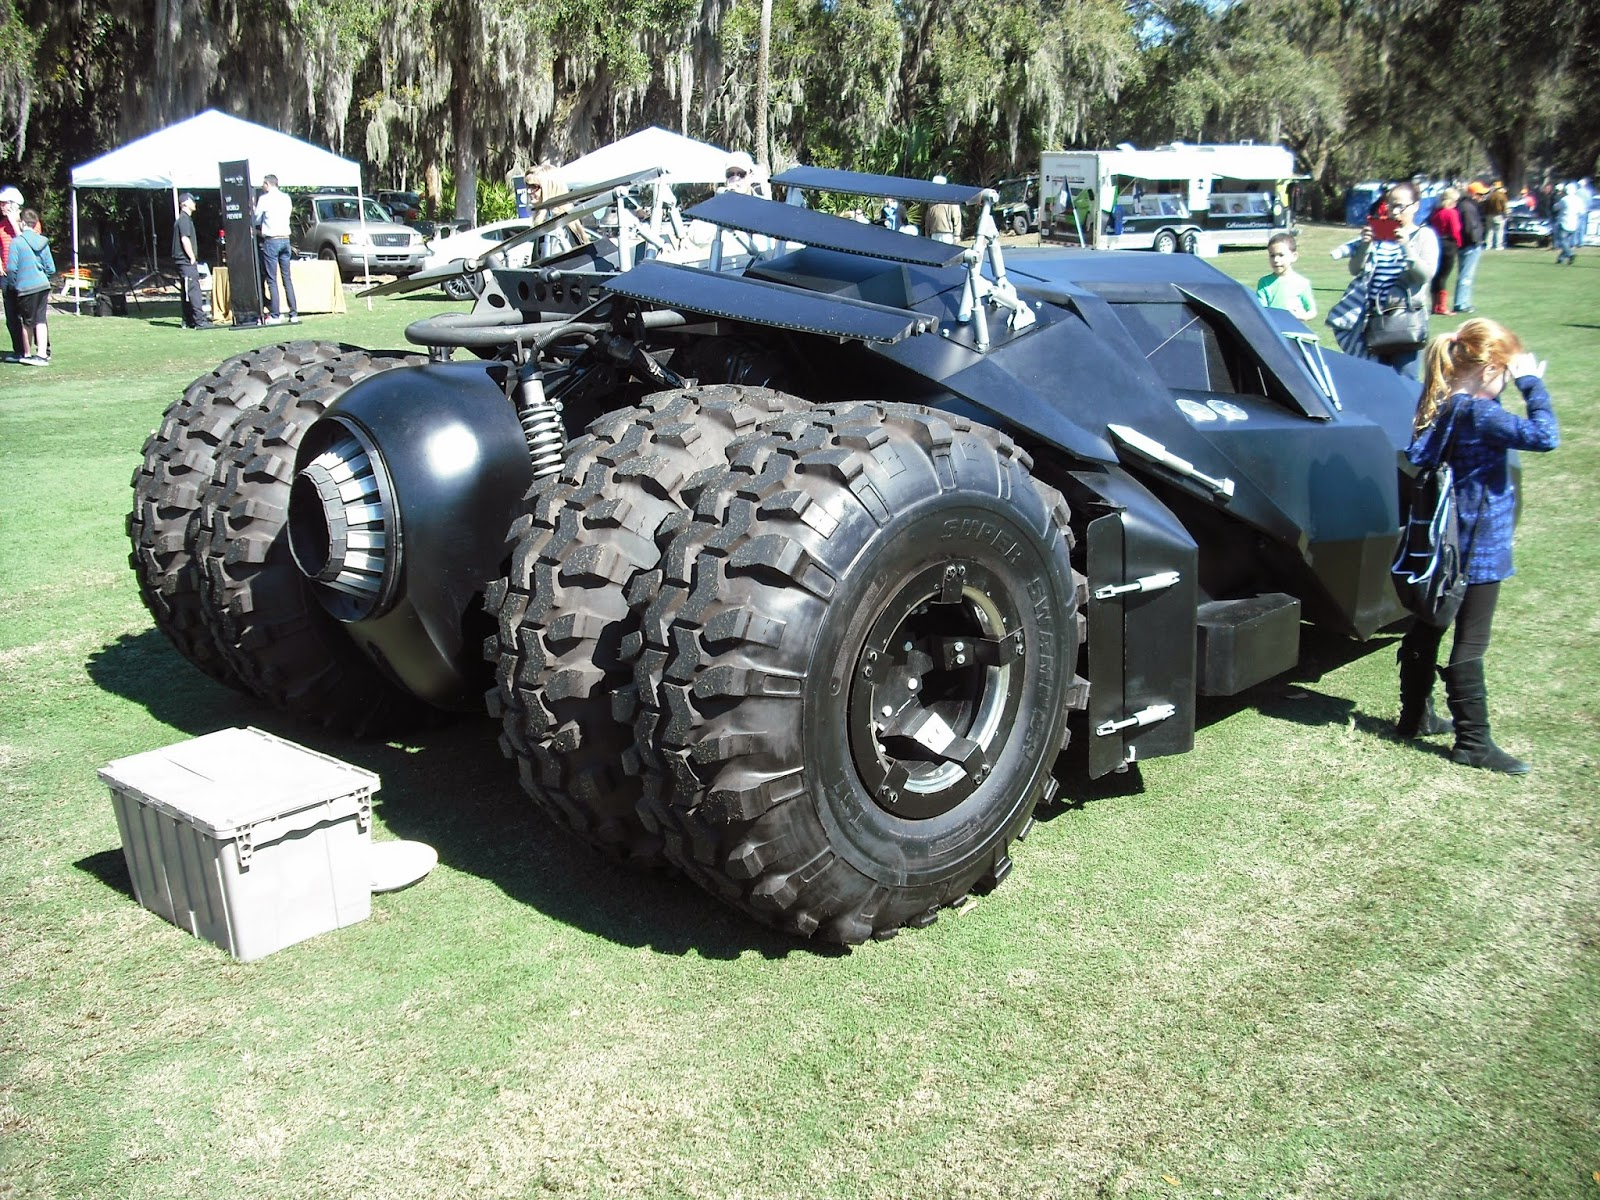 On The Road Amelia Island Concours DElegance The Antique Car - Amelia car show